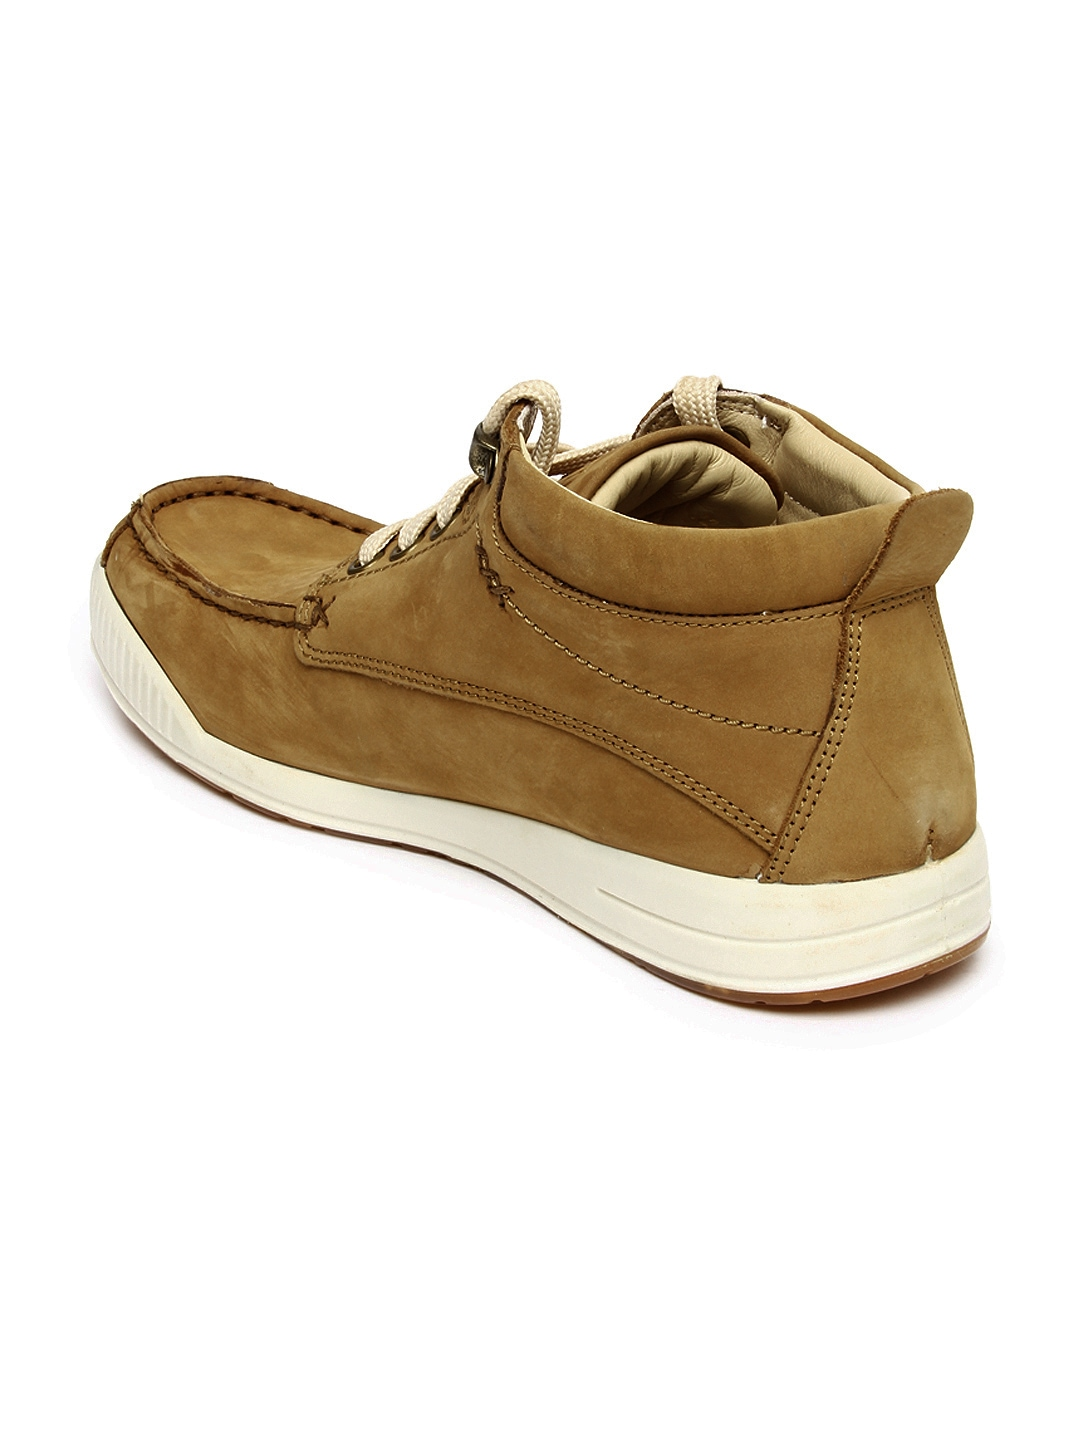 myntra woodland brown leather casual shoes 352159